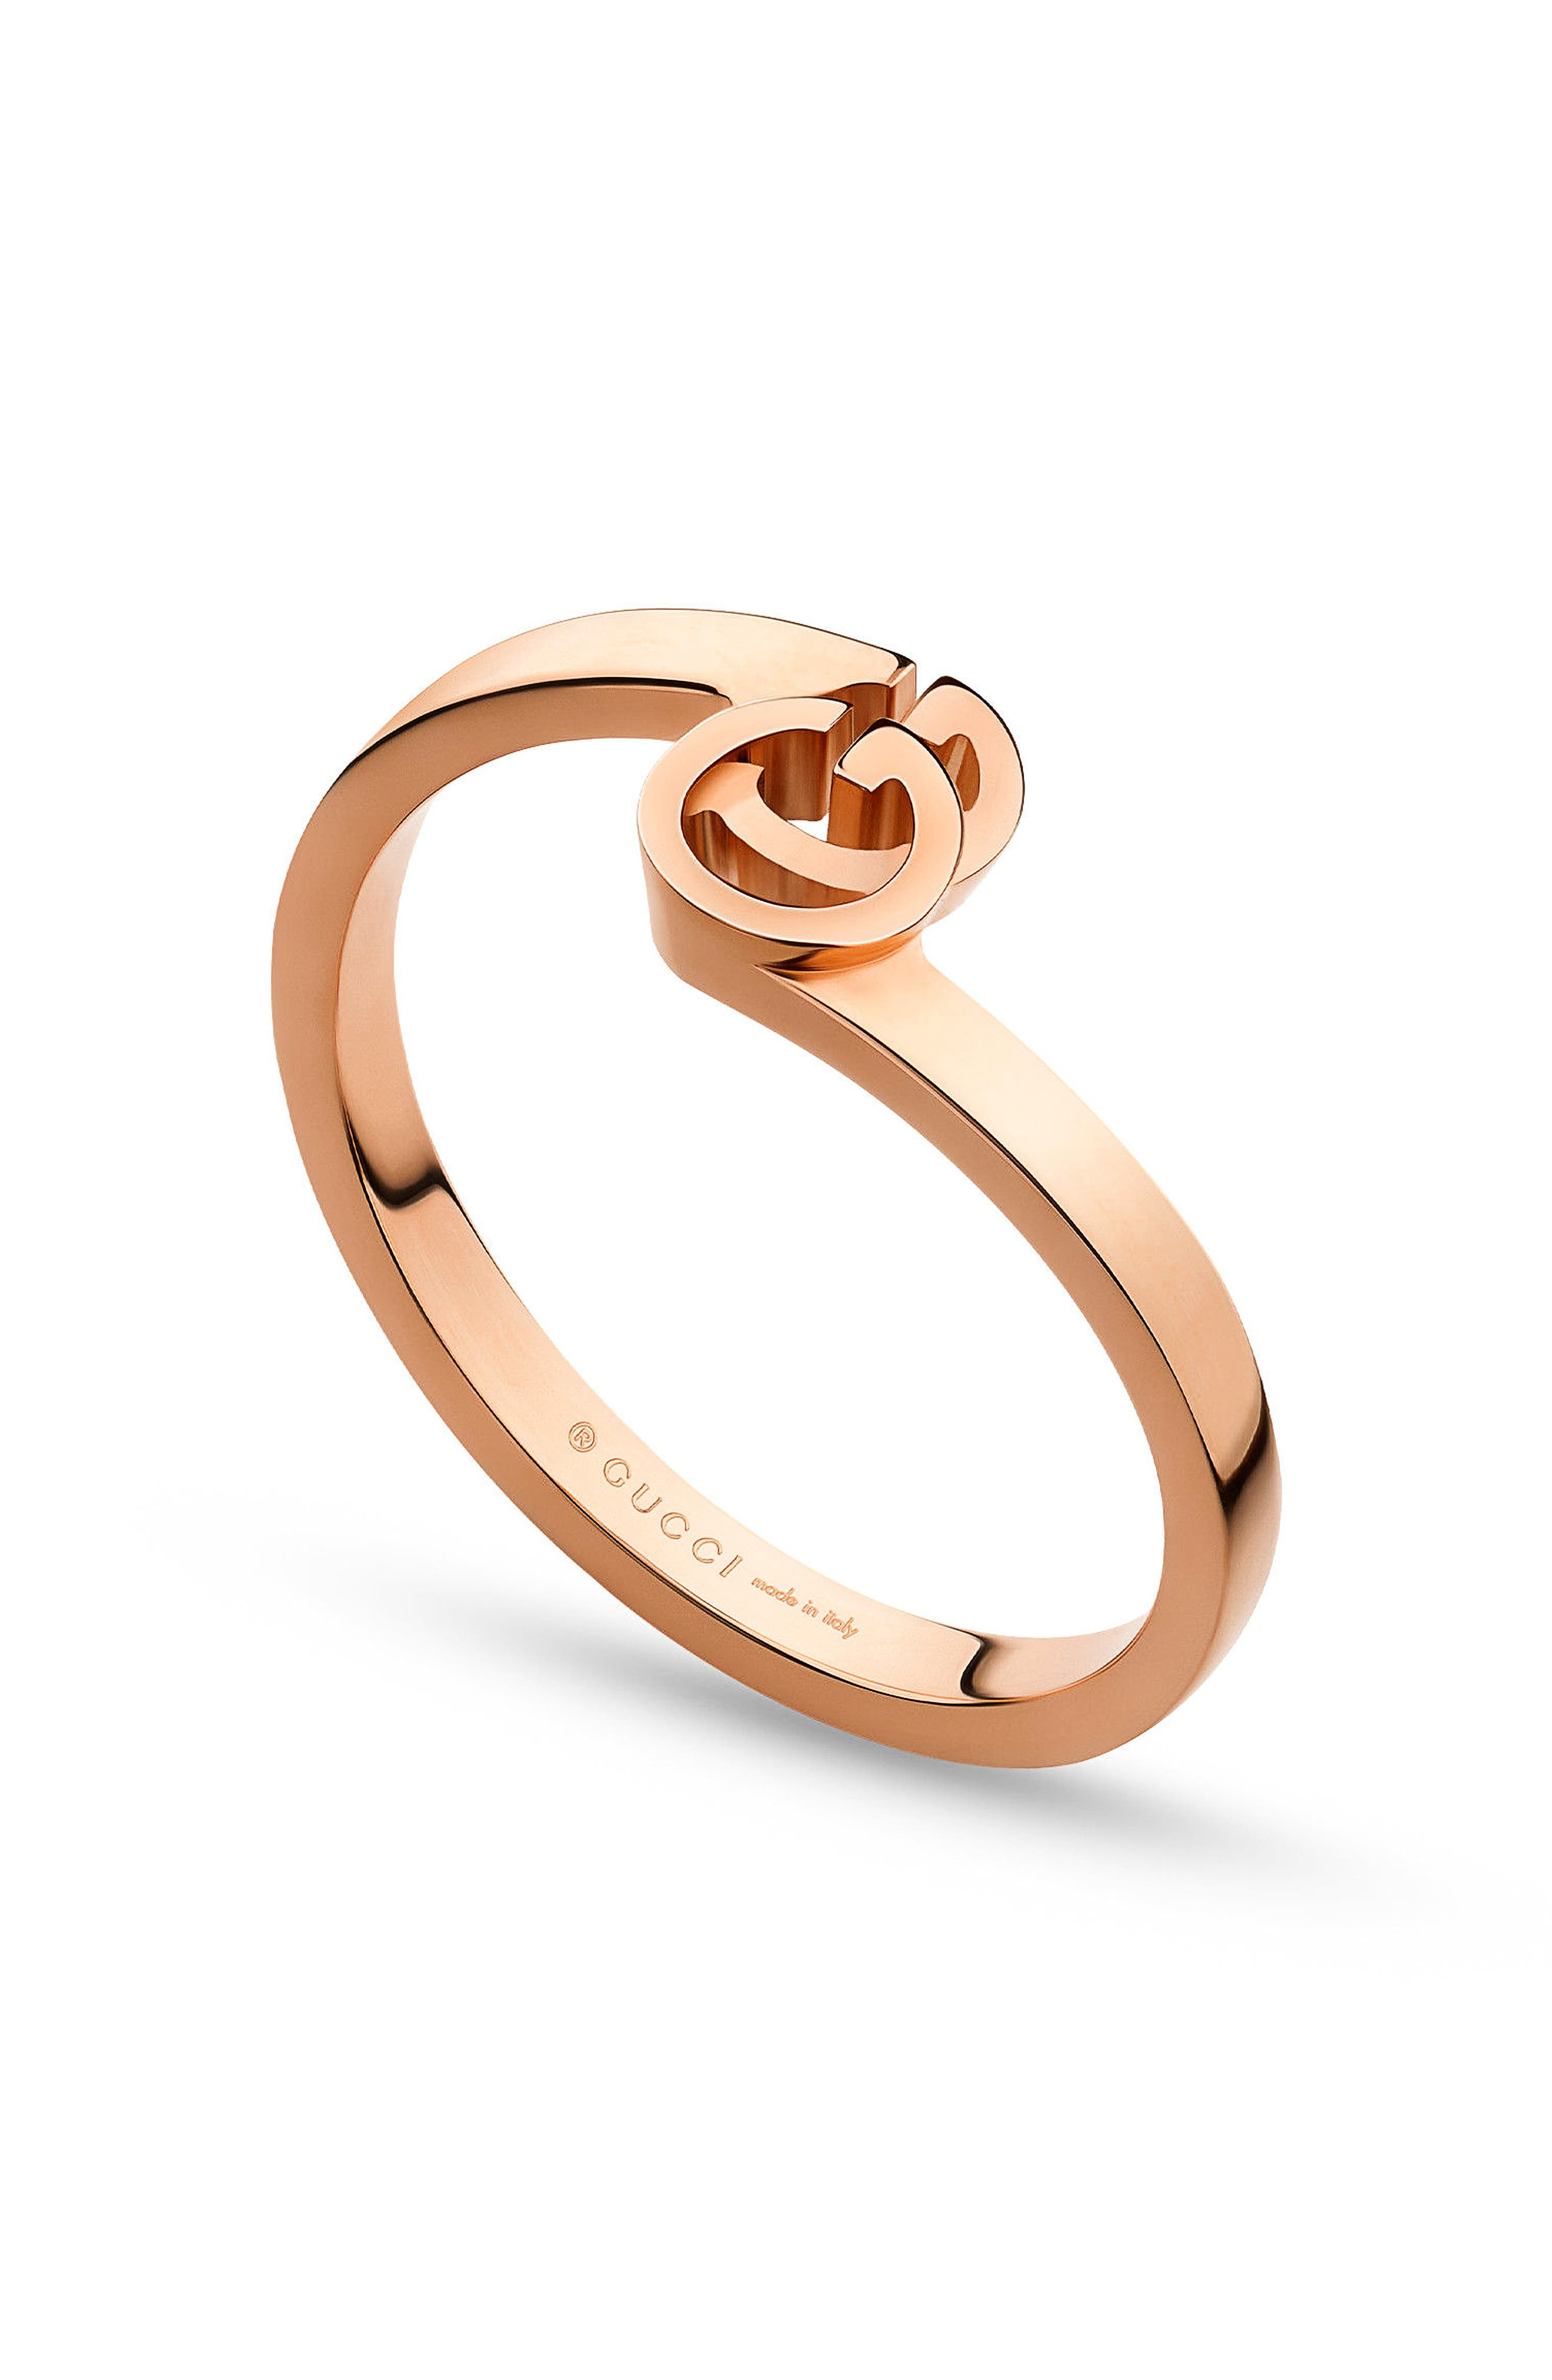 Double-G Stack Ring,                             Main thumbnail 1, color,                             Rose Gold